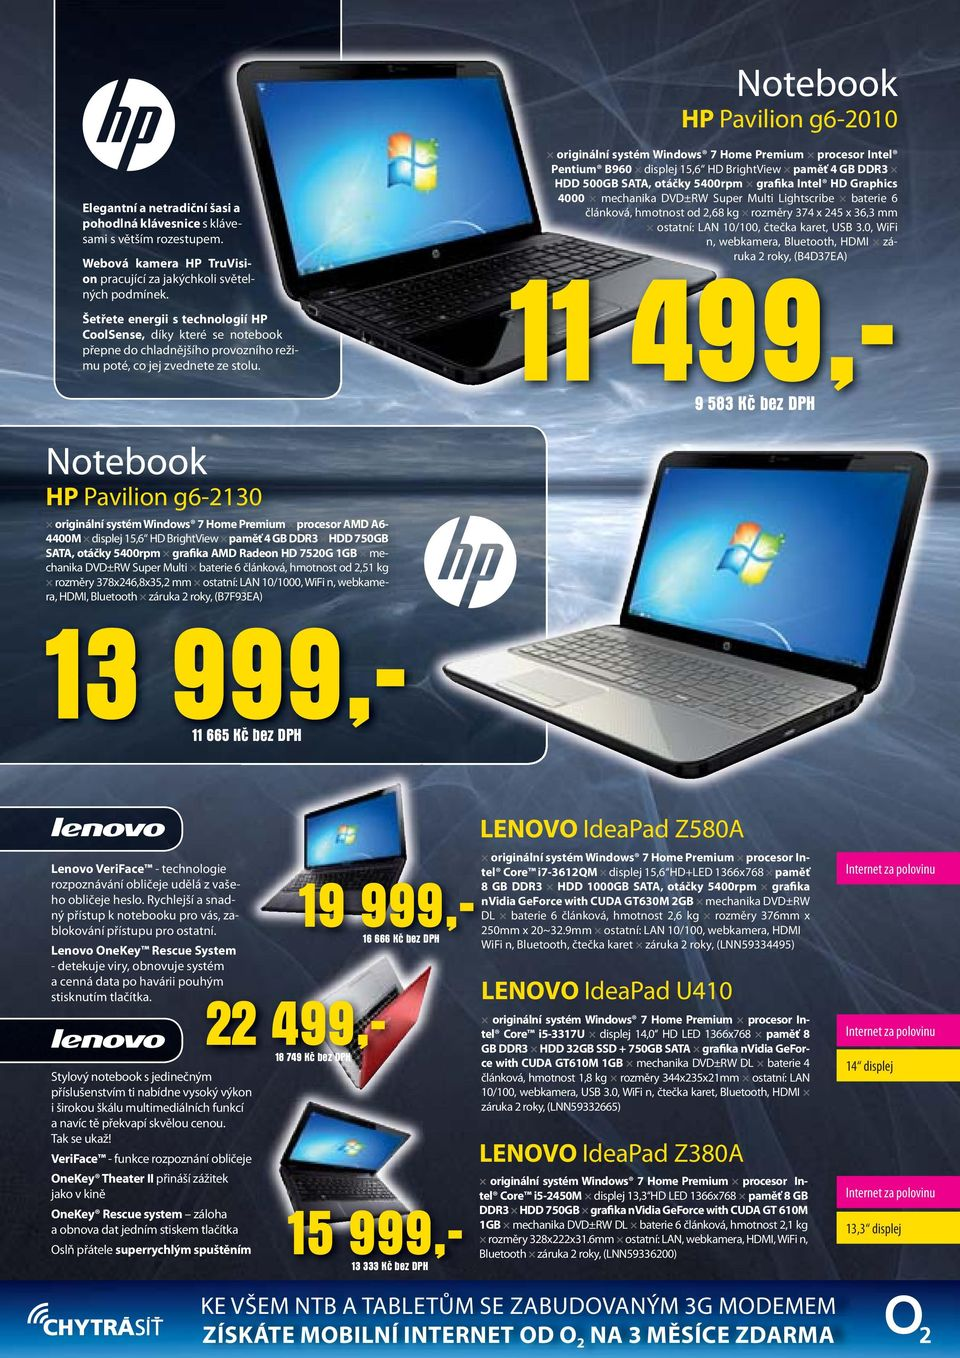 reži- originální systém Windows 7 Home Premium procesor Intel Pentium B960 displej 15,6 HD BrightView paměť 4 GB DDR3 HDD 500GB SATA, otáčky 5400rpm grafika Intel HD Graphics 4000 mechanika DVD±RW